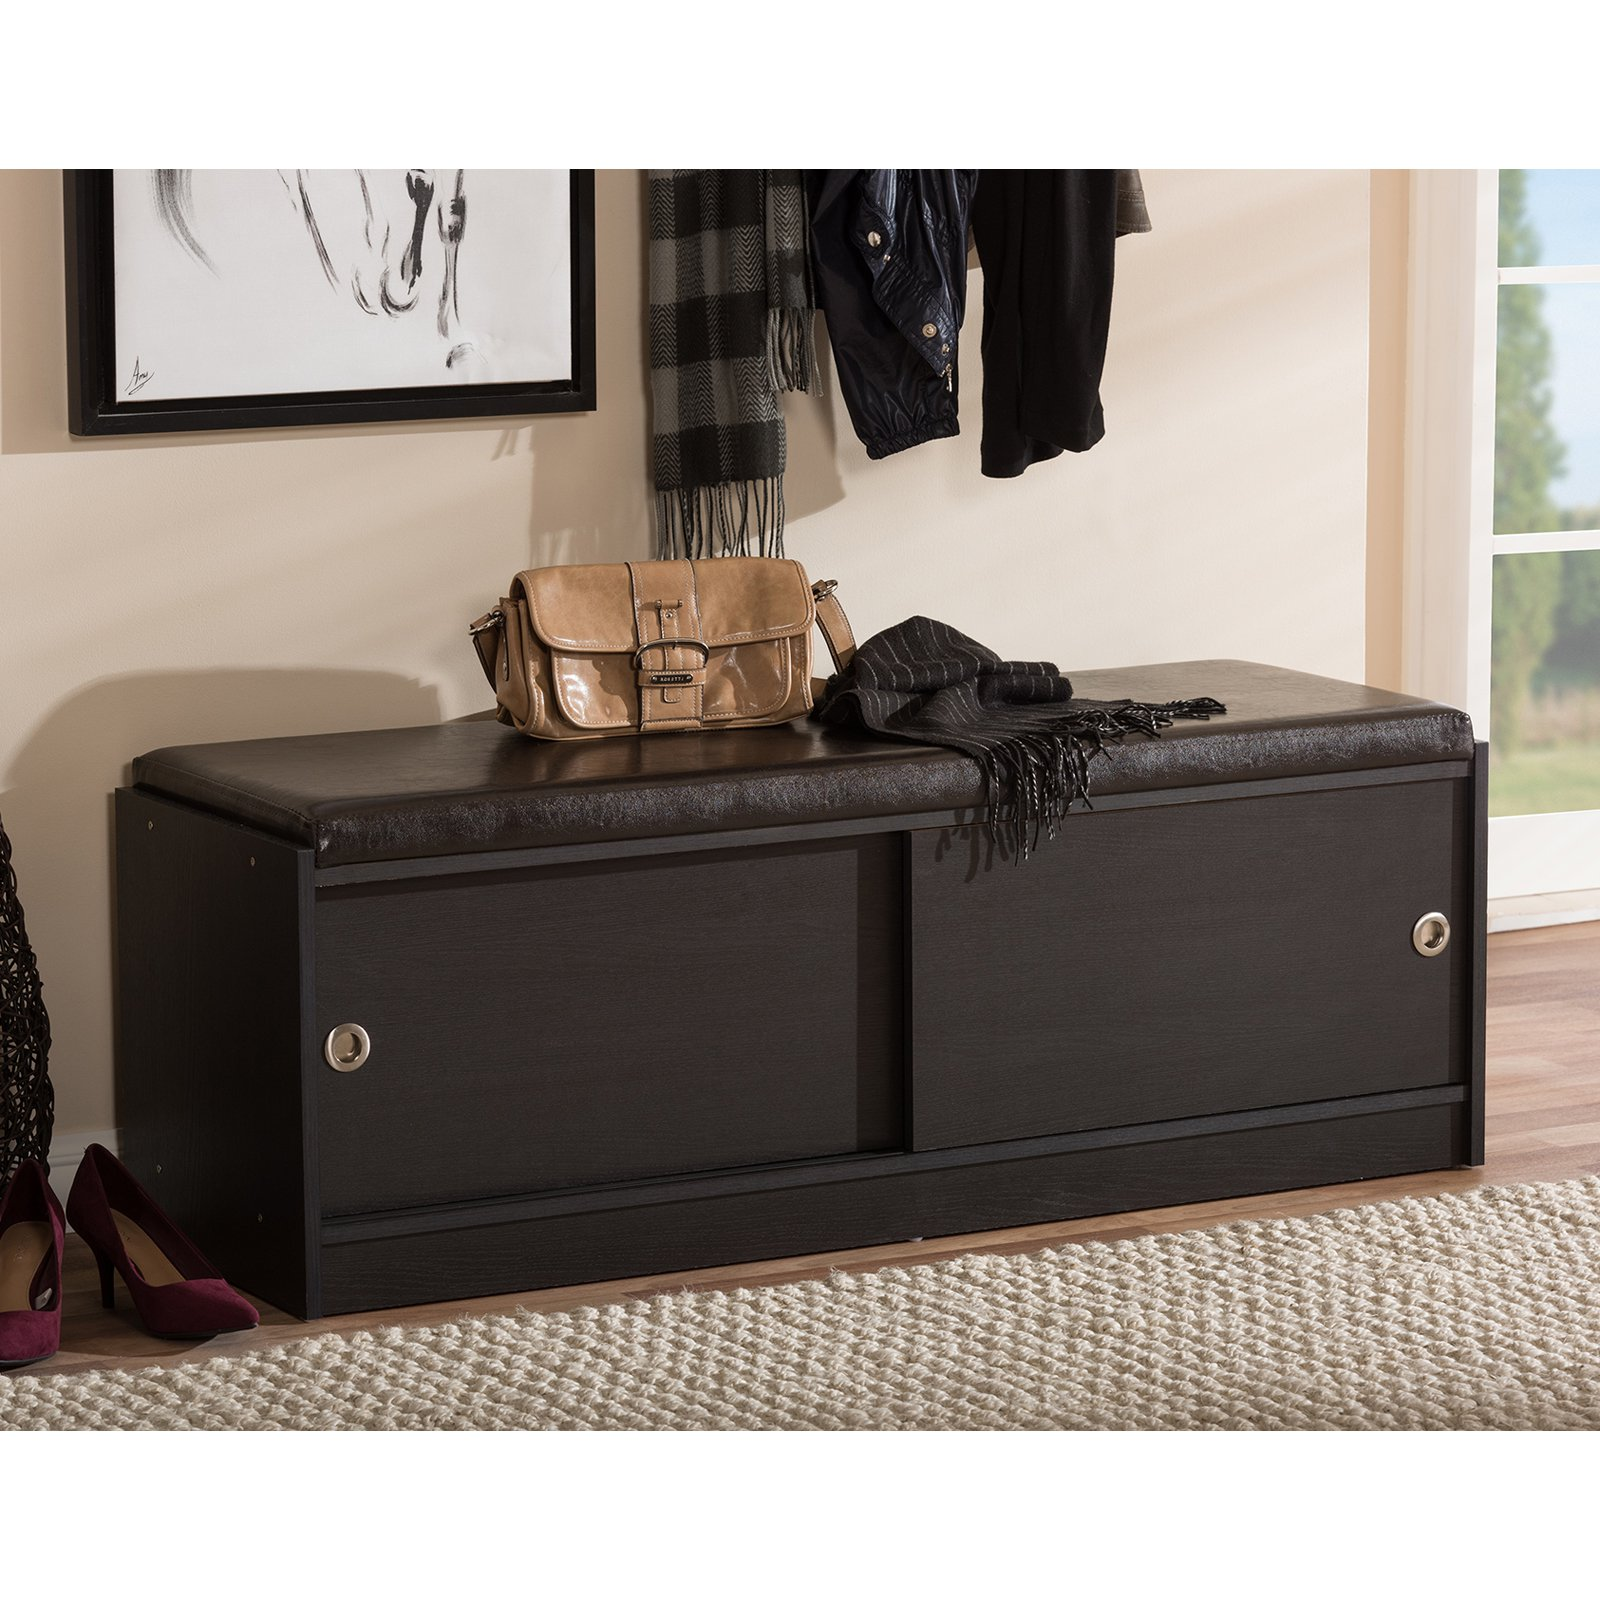 Baxton Studio Clevedon Dark Brown Wood Storage Bench Shoe Cabinet